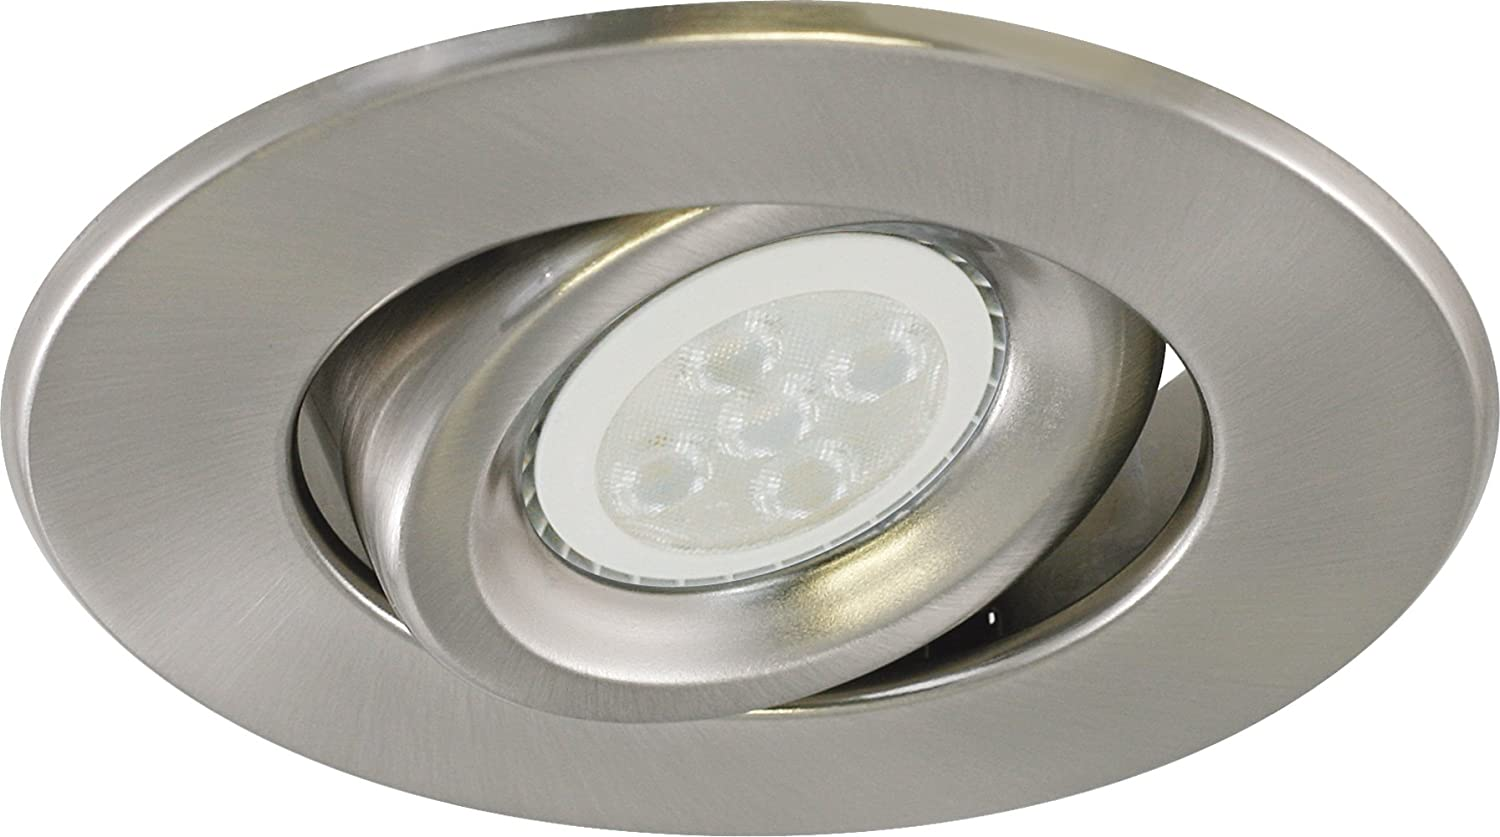 Liteline RC40118R3-LED-EW-BN All-in-One 4-inch LED Recessed Combo with New Construction Housing 6W LED PAR16 lamp Brushed Nickel Gimbal Trim